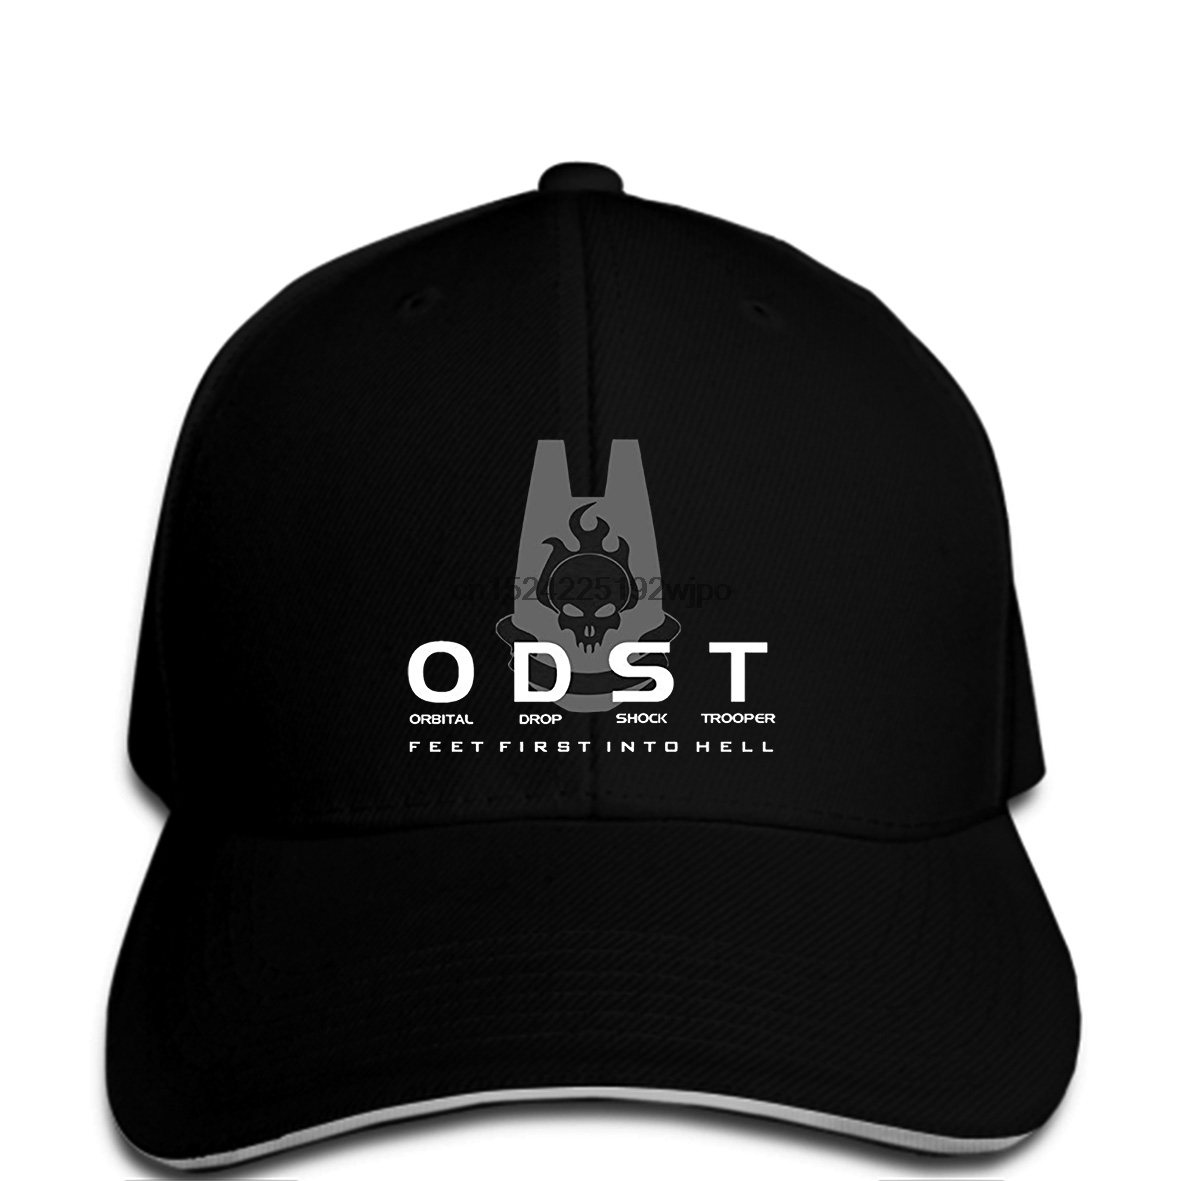 Men Baseball cap Funny Halo Odst Logo And Motto Black funny cap novelty cap women